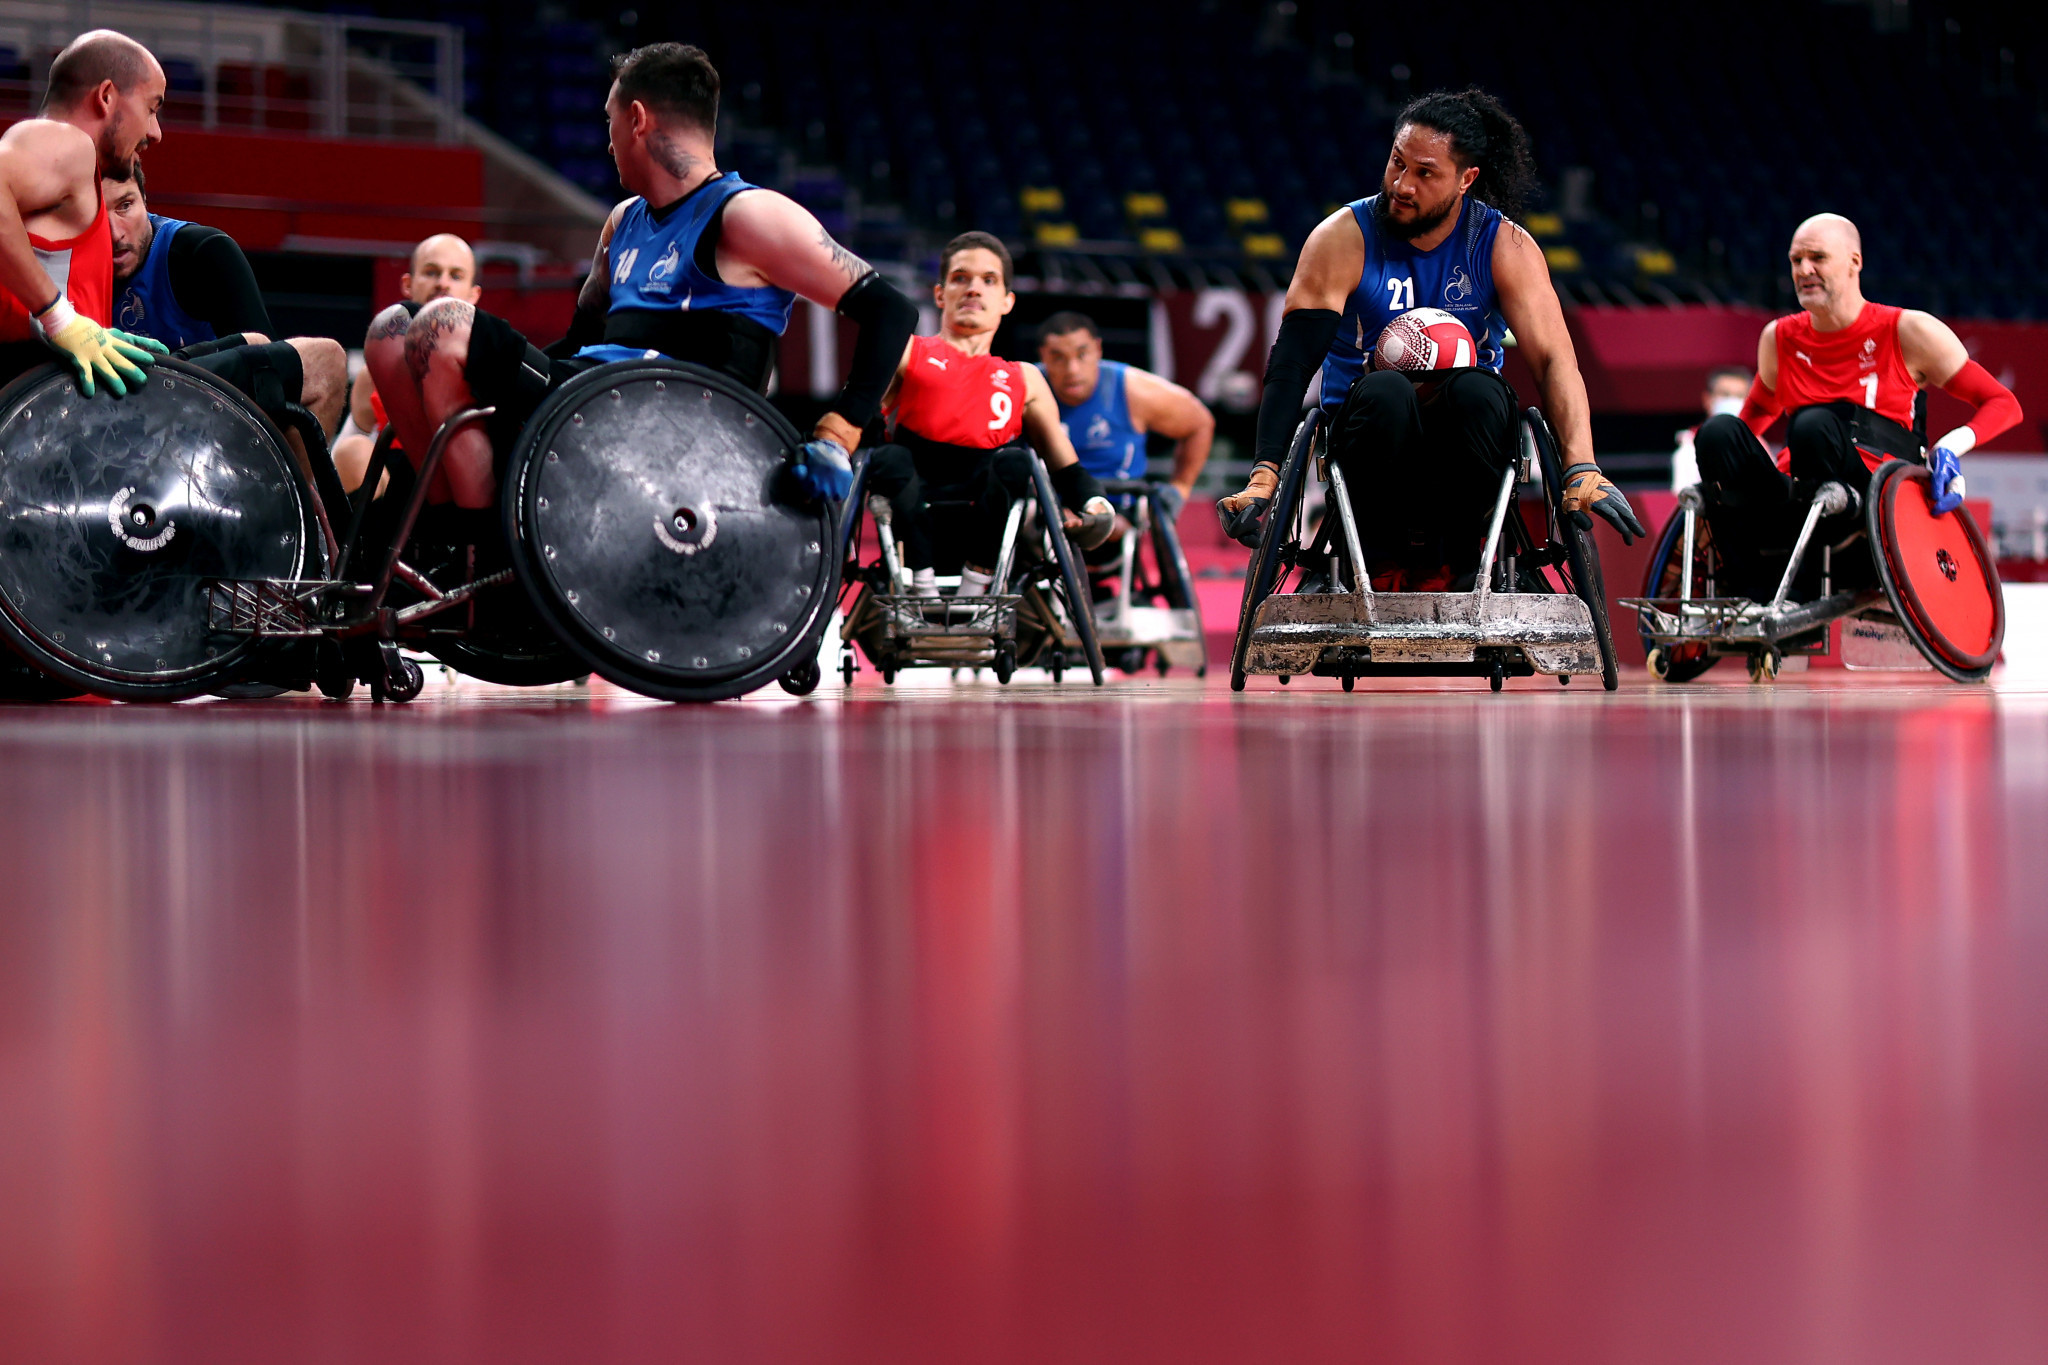 Tickets on sale for 2022 Wheelchair Rugby World Championship